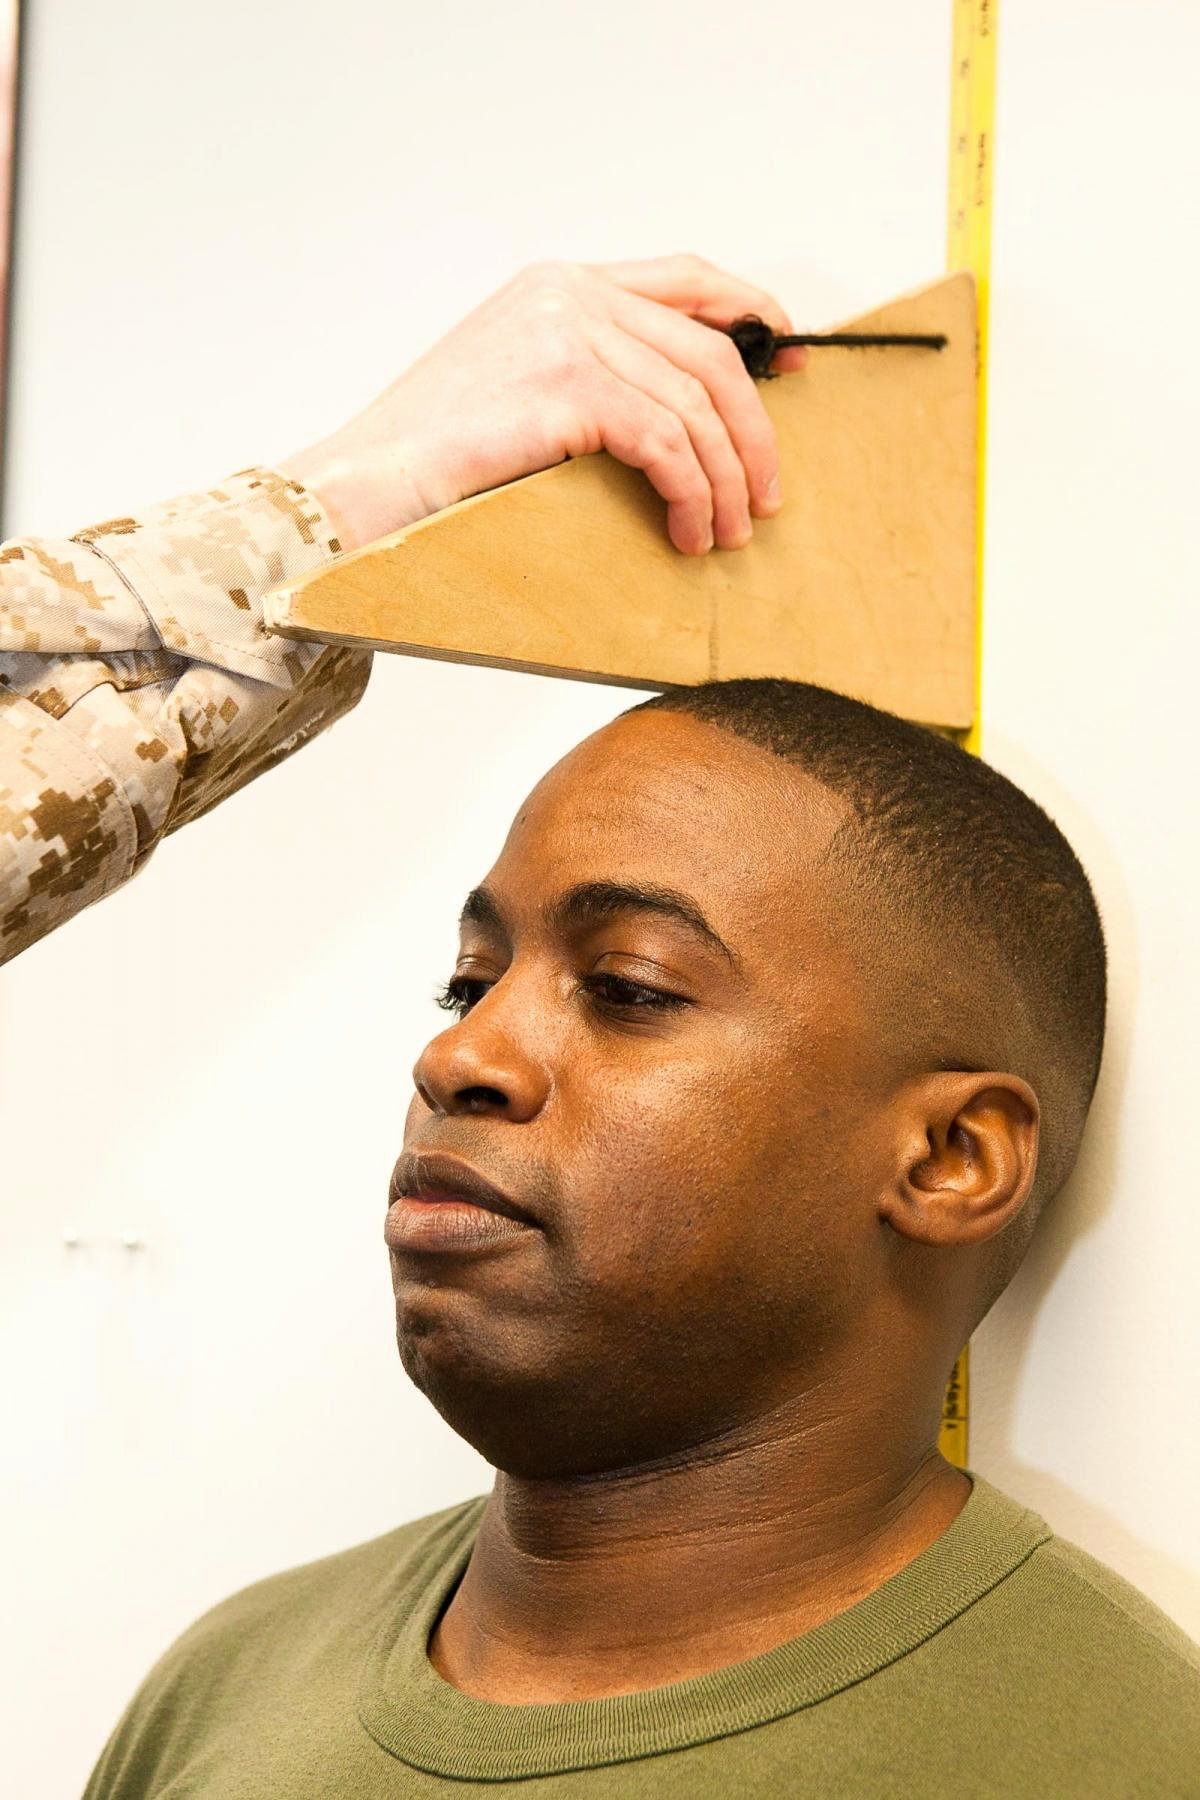 Army Weight and Tape Luxury Marines Measure Up and Weigh In Article